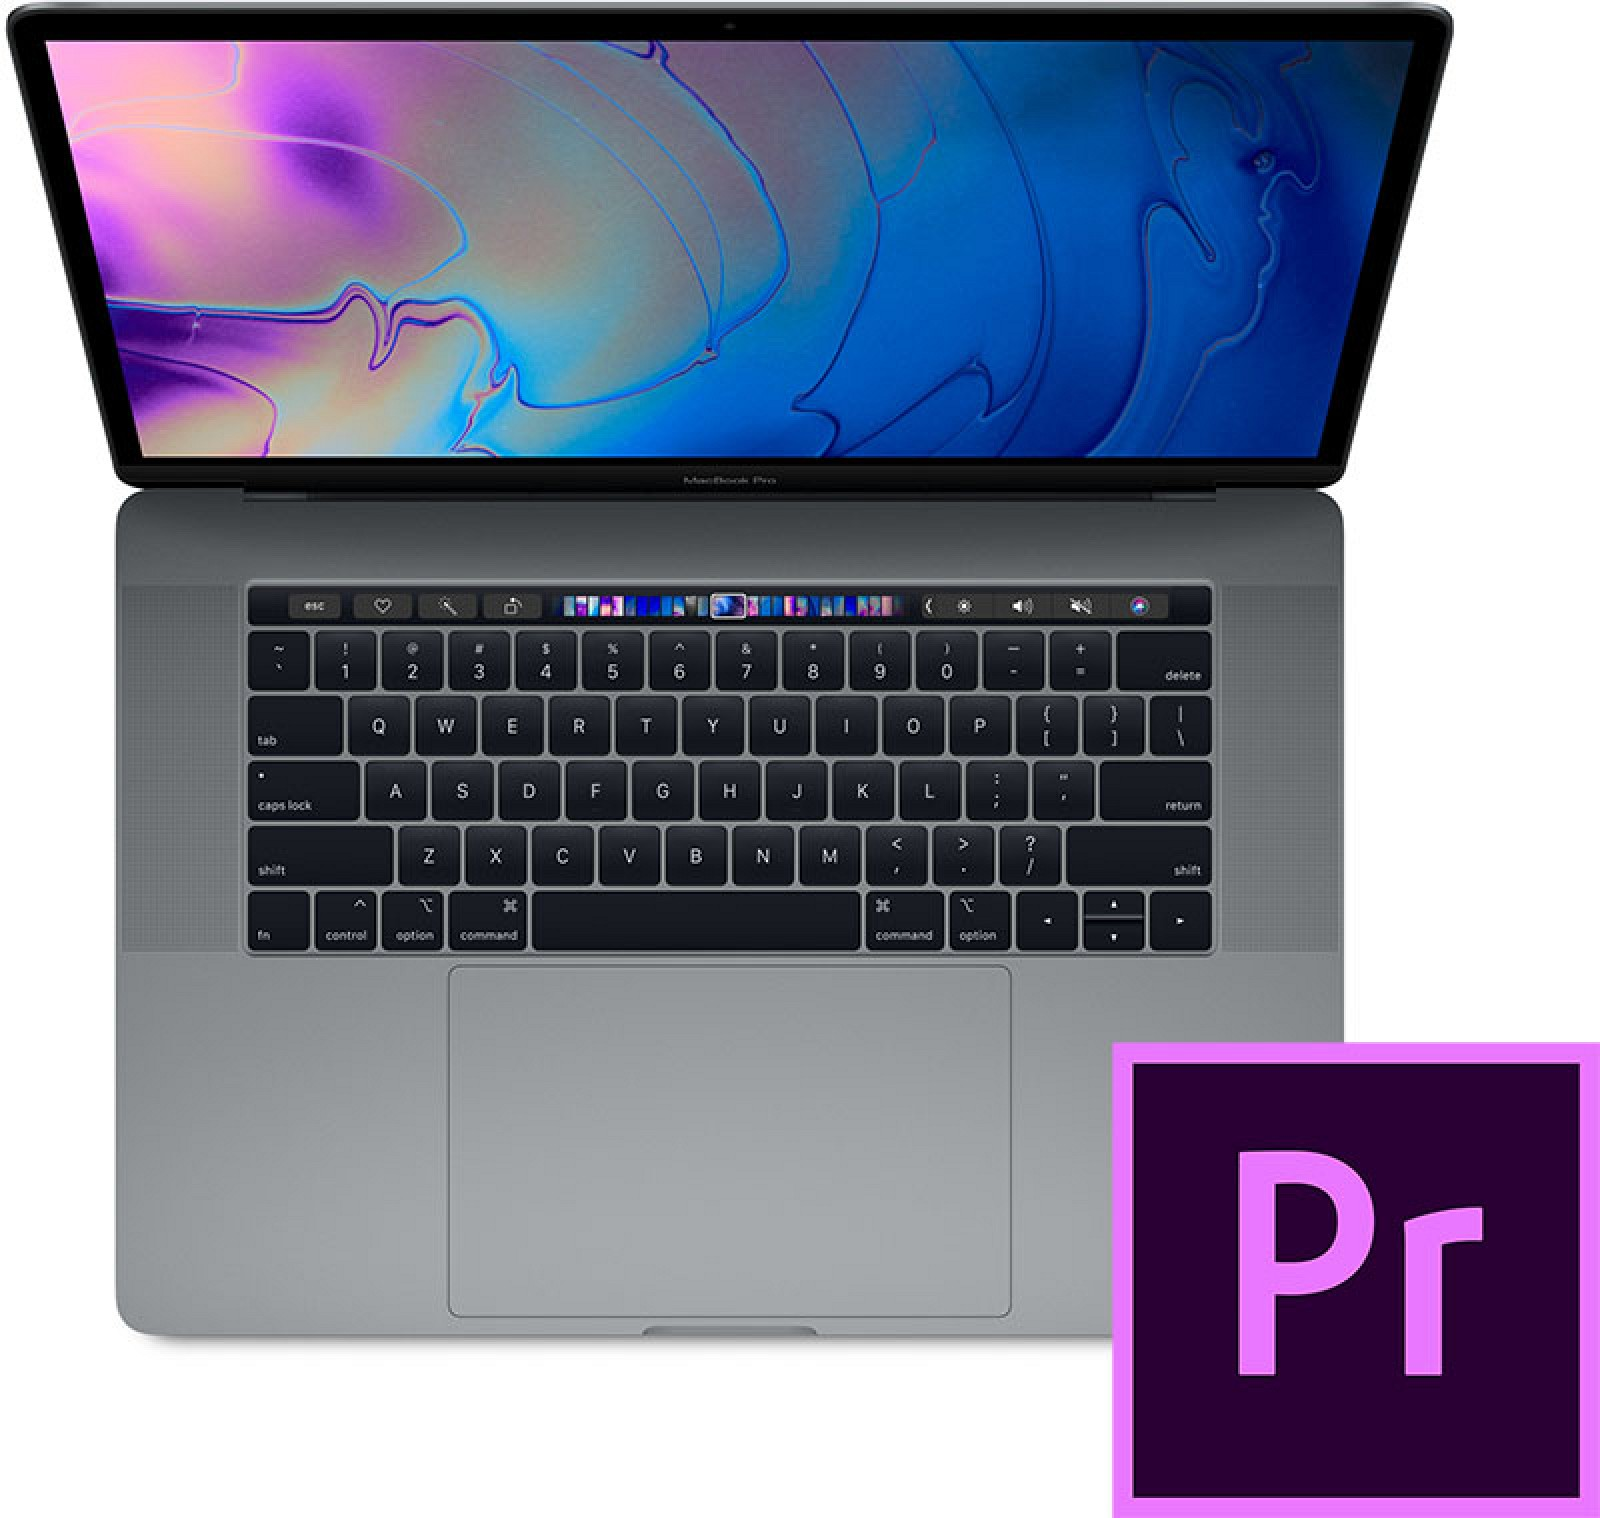 Adobe Issues Premiere Pro Fix for Bug That Caused Blown-Out MacBook